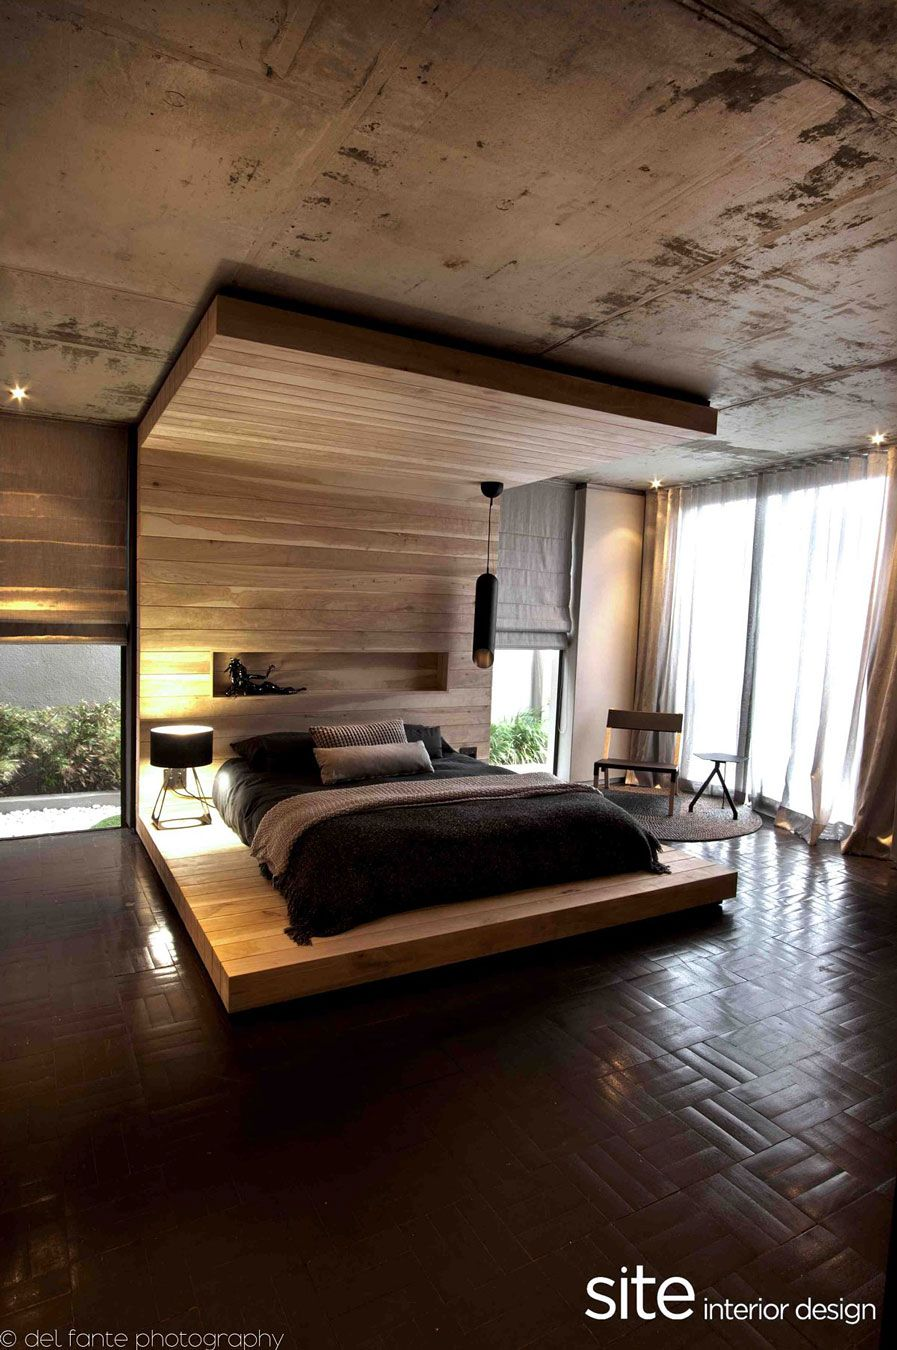 ... Master Bedroom Lighting Ideas With Wood Wall Panels Exposed Concrete  Ceiling And Floor Lamp Design: The Elegant Aupiais House By Site Interior  Design